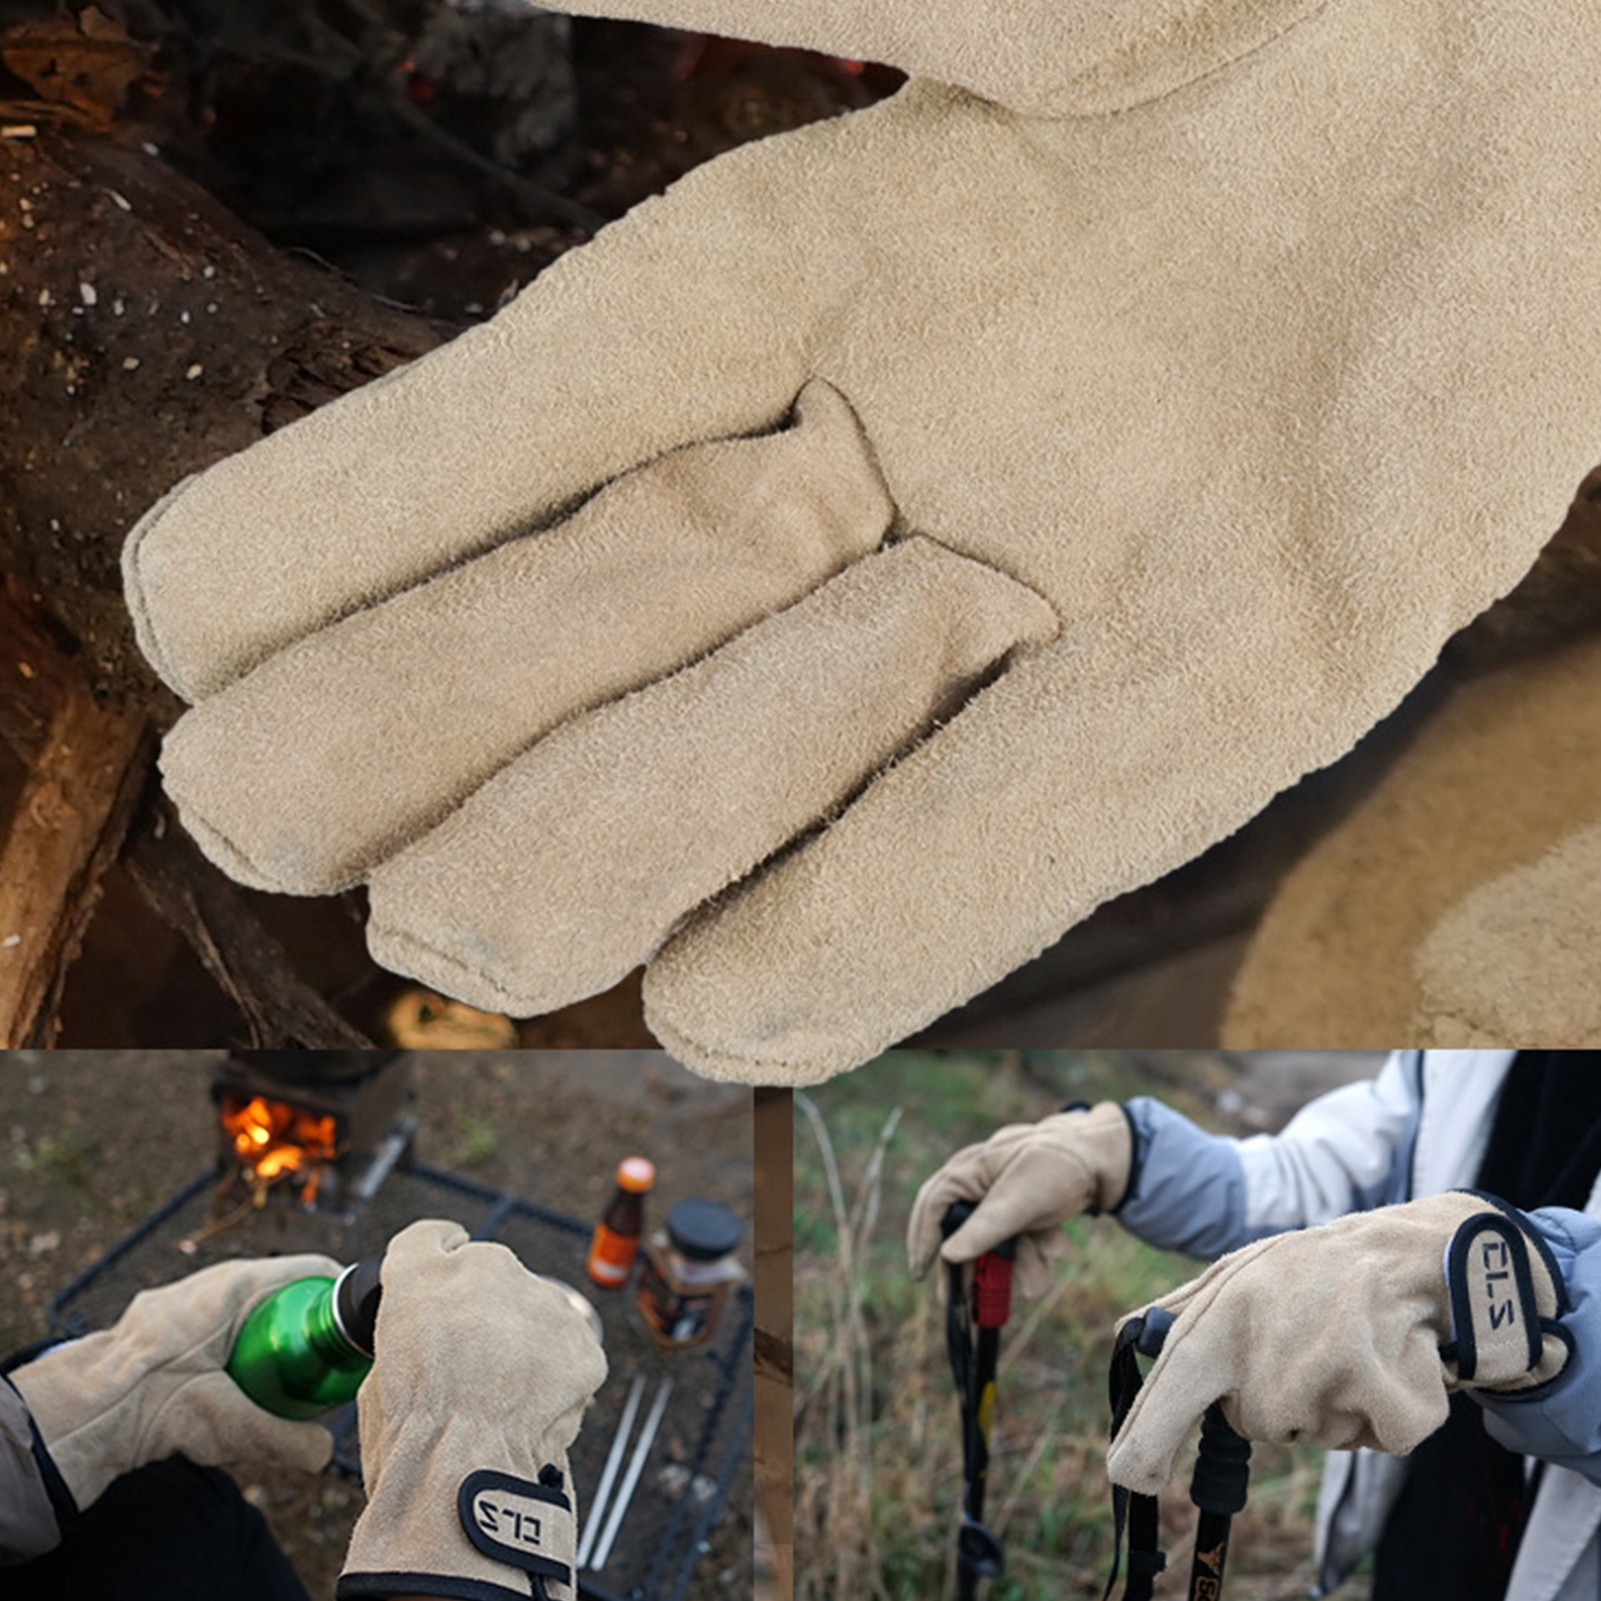 New outdoor barbecue gloves, anti-scald barbecue gloves, double-layer protection design, durable fire protection gloves #W